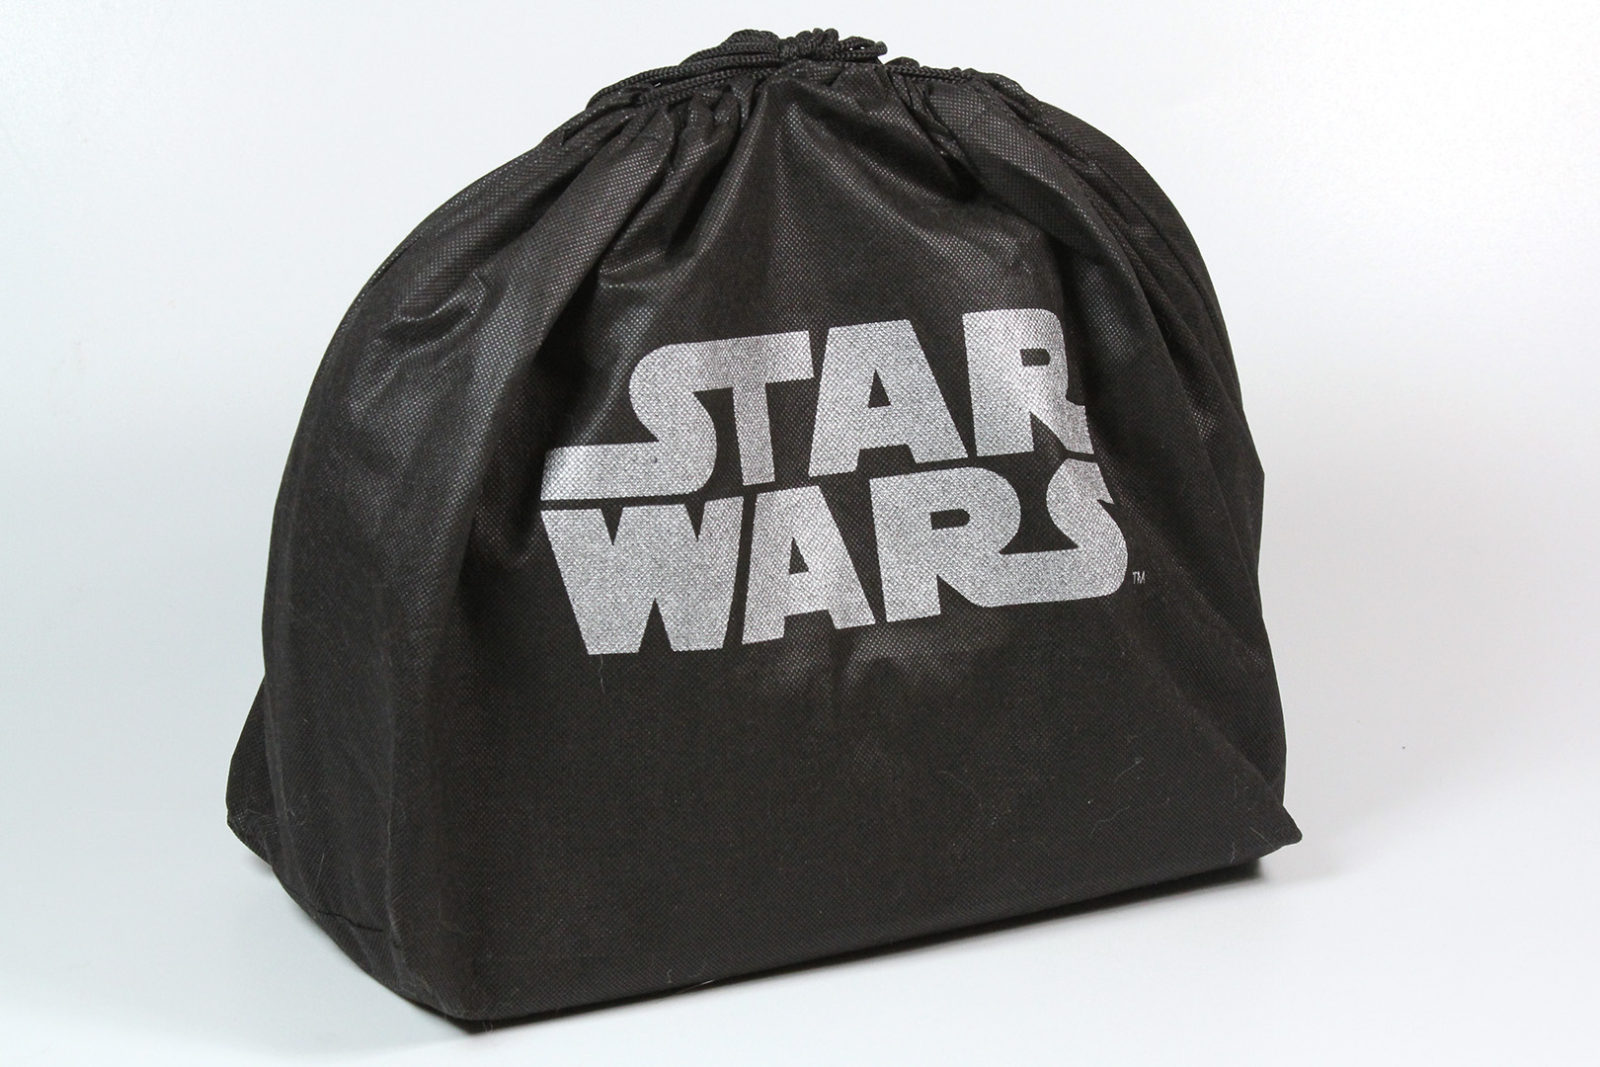 Loungefly - Darth Vader dome bag